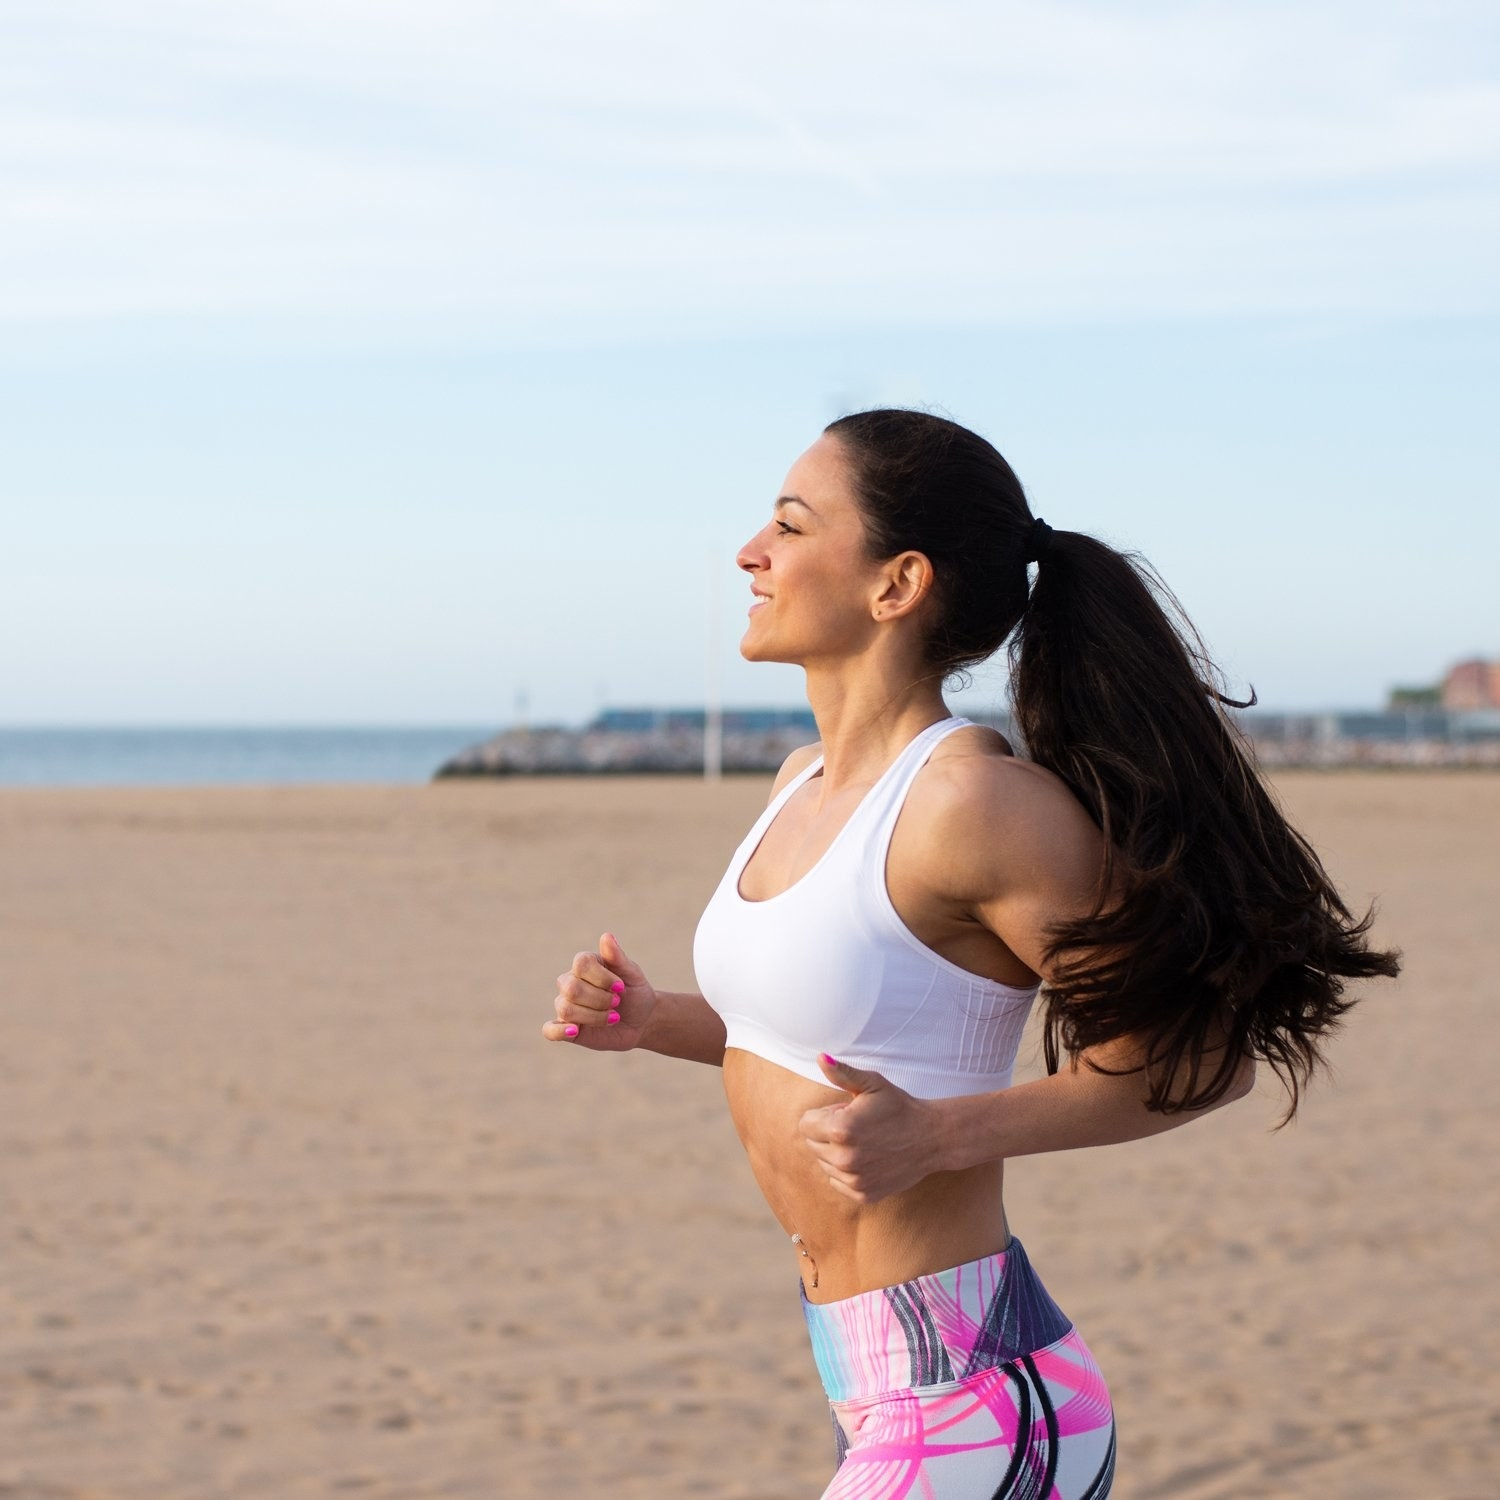 Model with thick hair running while wearing the hair tie